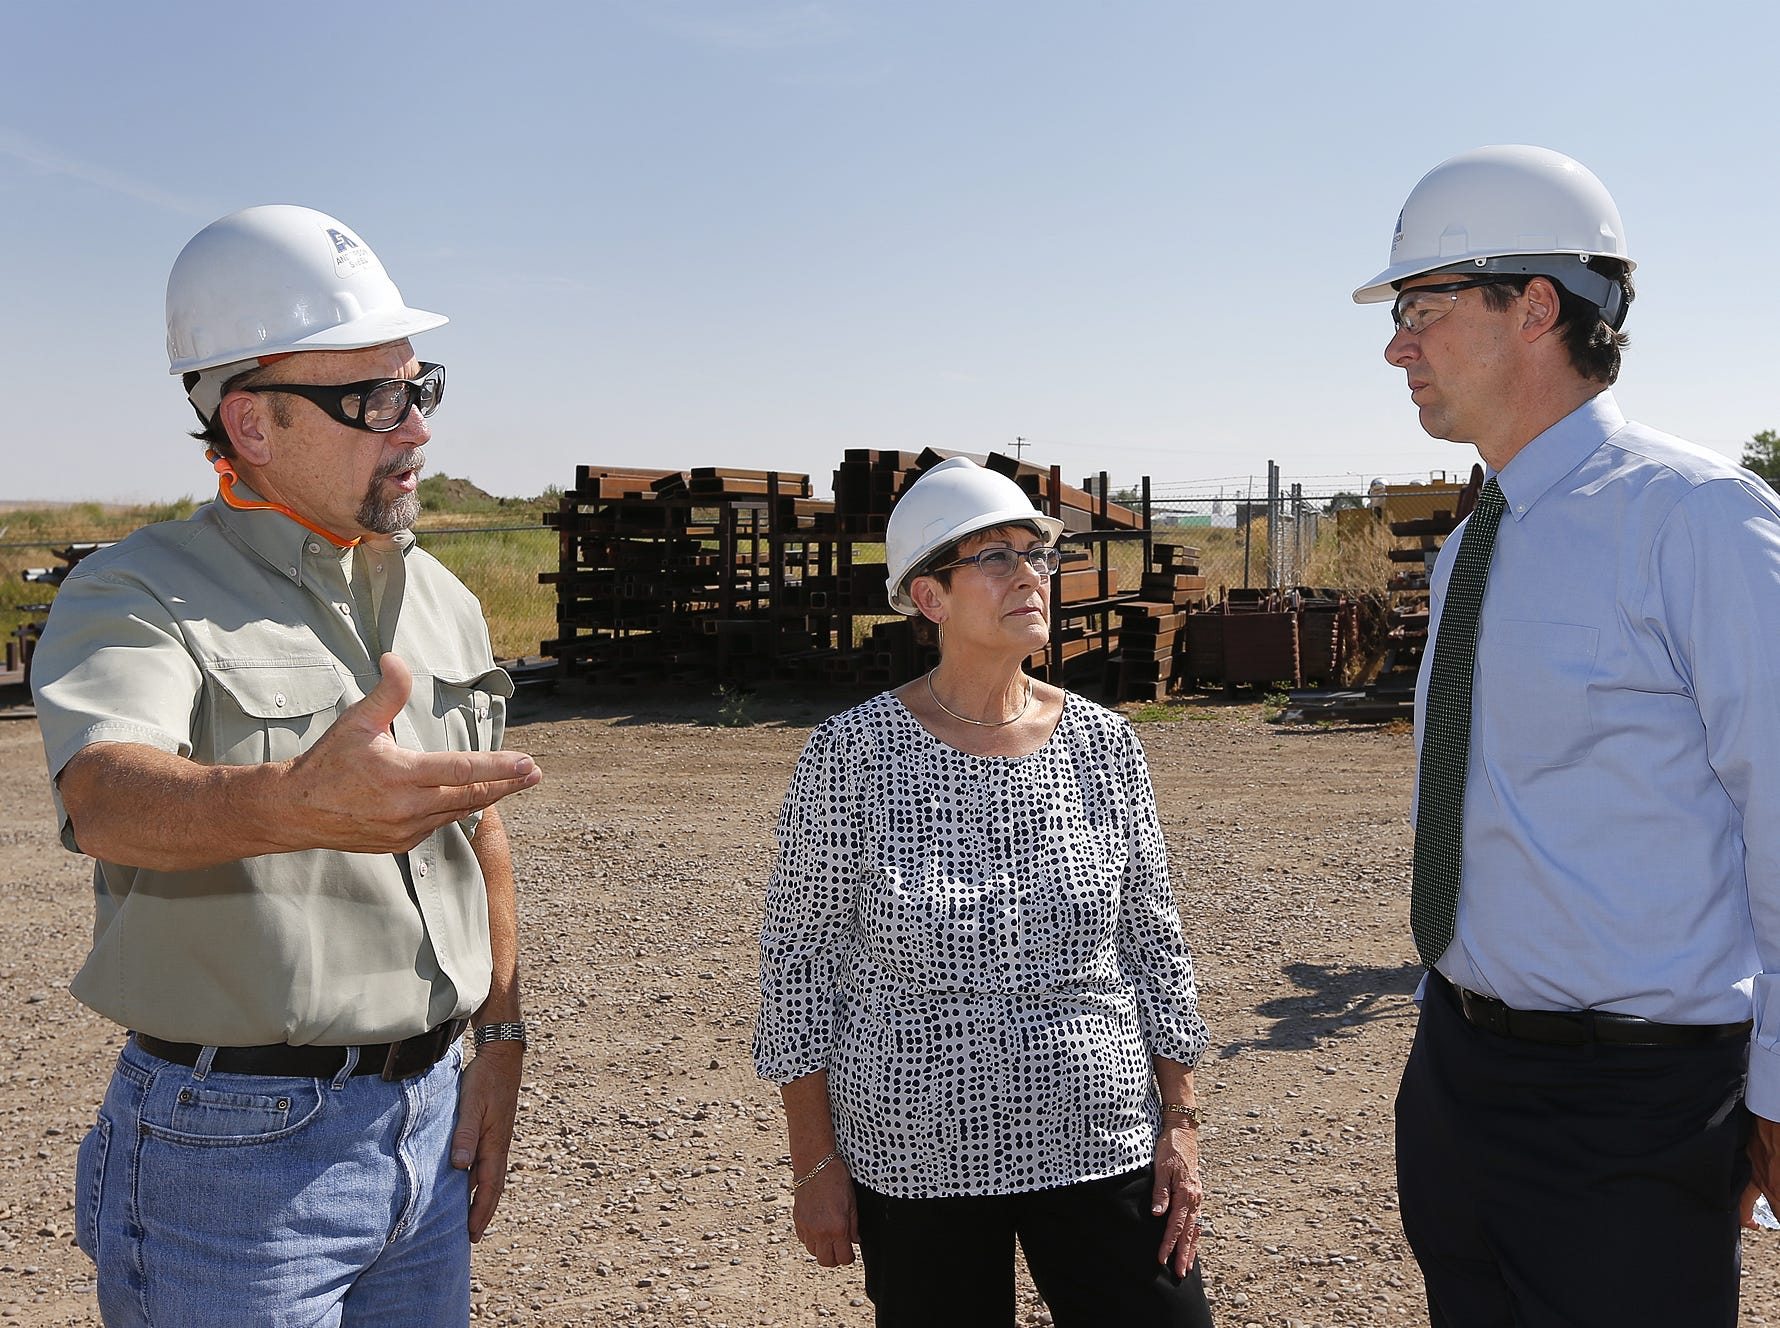 TRIBUNE PHOTO/LARRY BECKNER Steve Patrick, vice president of operations, left, and Susan Humble, president and CEO of Anderson Steel, talk with Gov. Steve Bullock during a tour of Anderson Steel on Tuesday. Steve Patrick, vice president of operations, left, and Susan Humble, president and CEO of Anderson Steel, talk with Gov. Steve Bullock during a tour of Anderson Steel Tuesday.